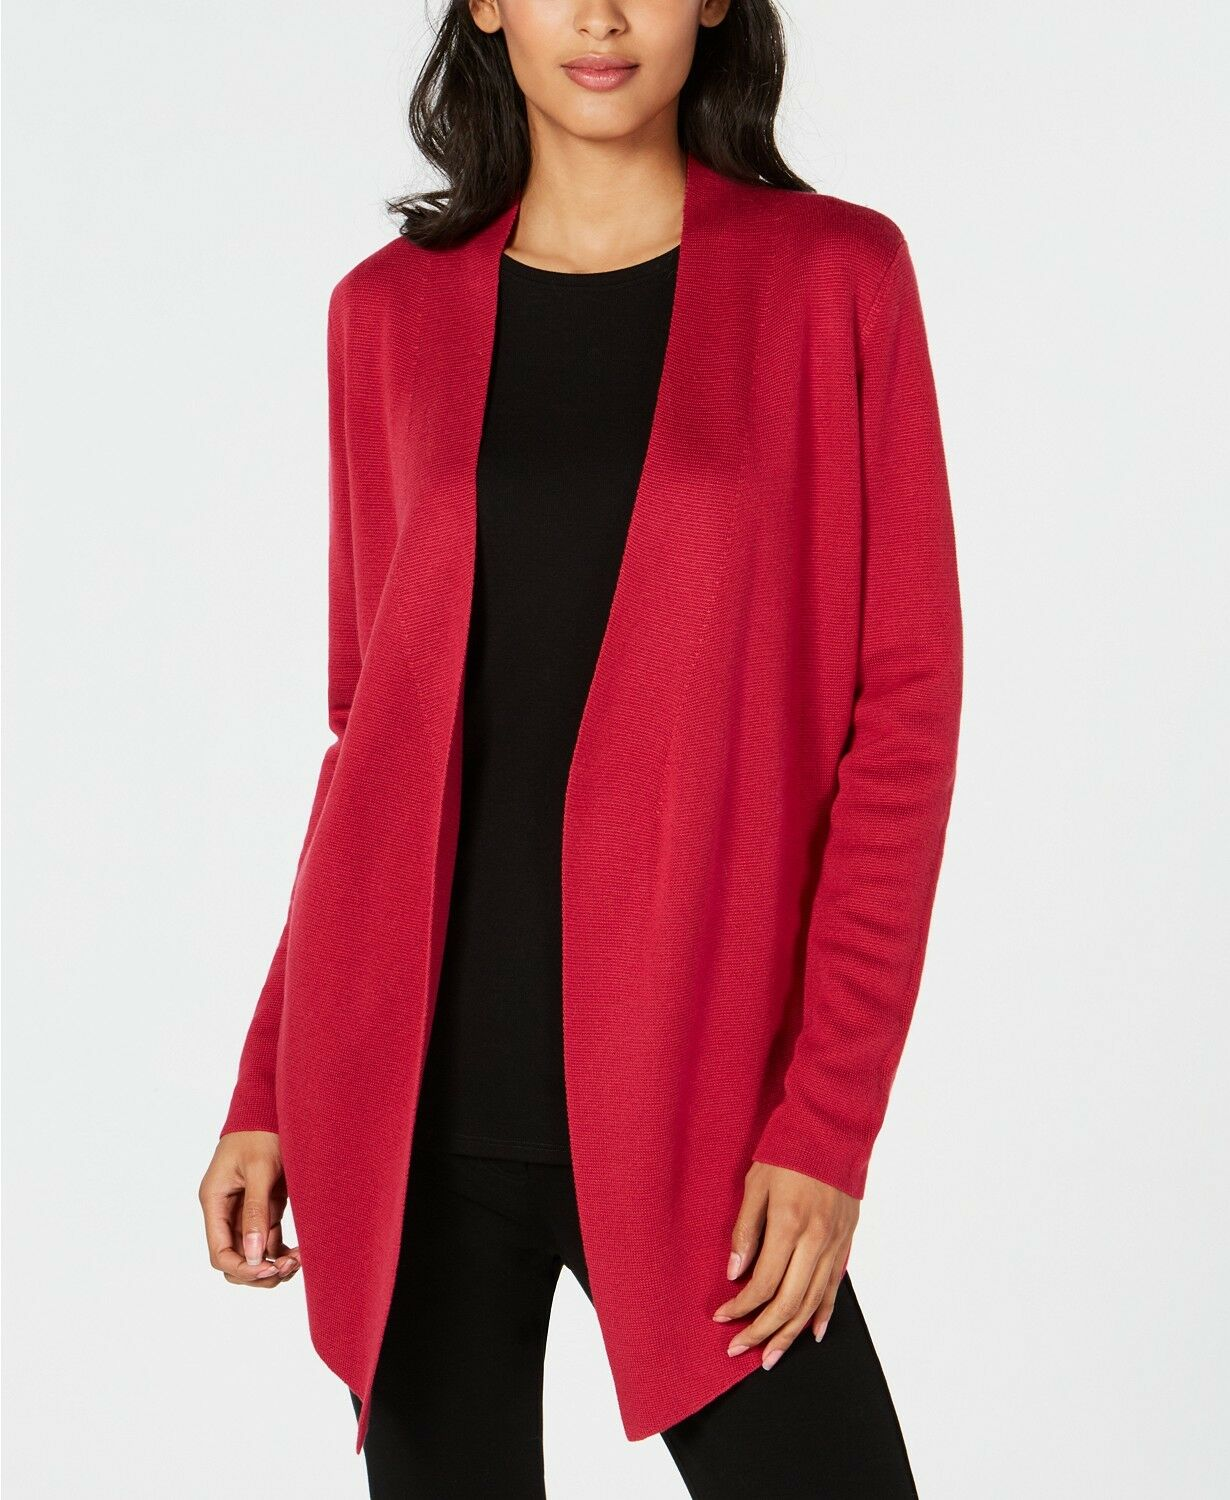 NEW EILEEN FISHER FISHER FISHER RADISH TENCEL SILK ANGLE FRONT OPEN FRONT CARDIGAN L  298 60e27f